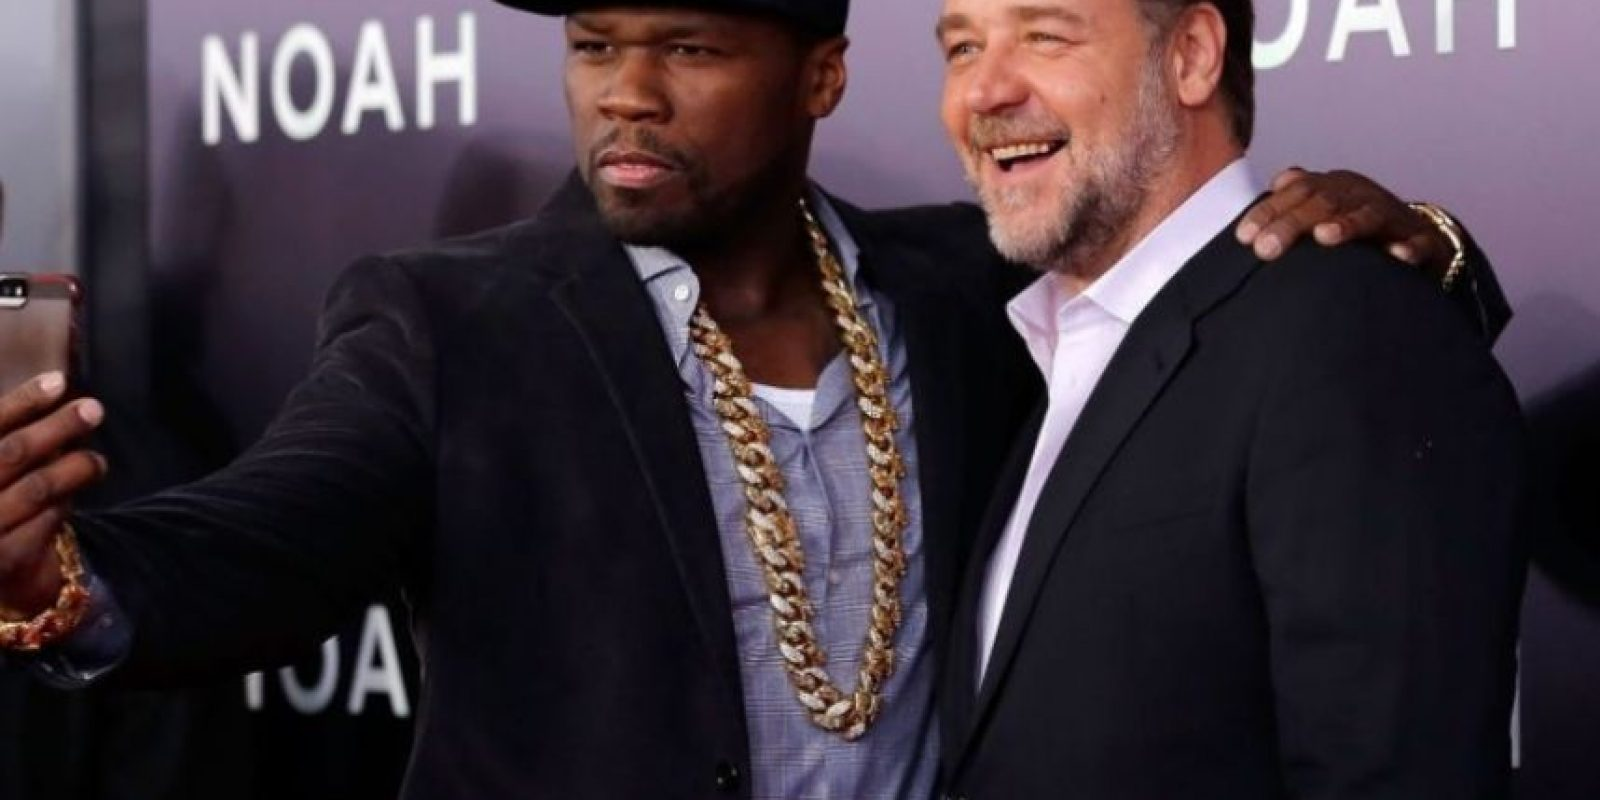 '50 Cent' y el actor Russell Crowe durante la premiere de Noé. Foto: Getty Images